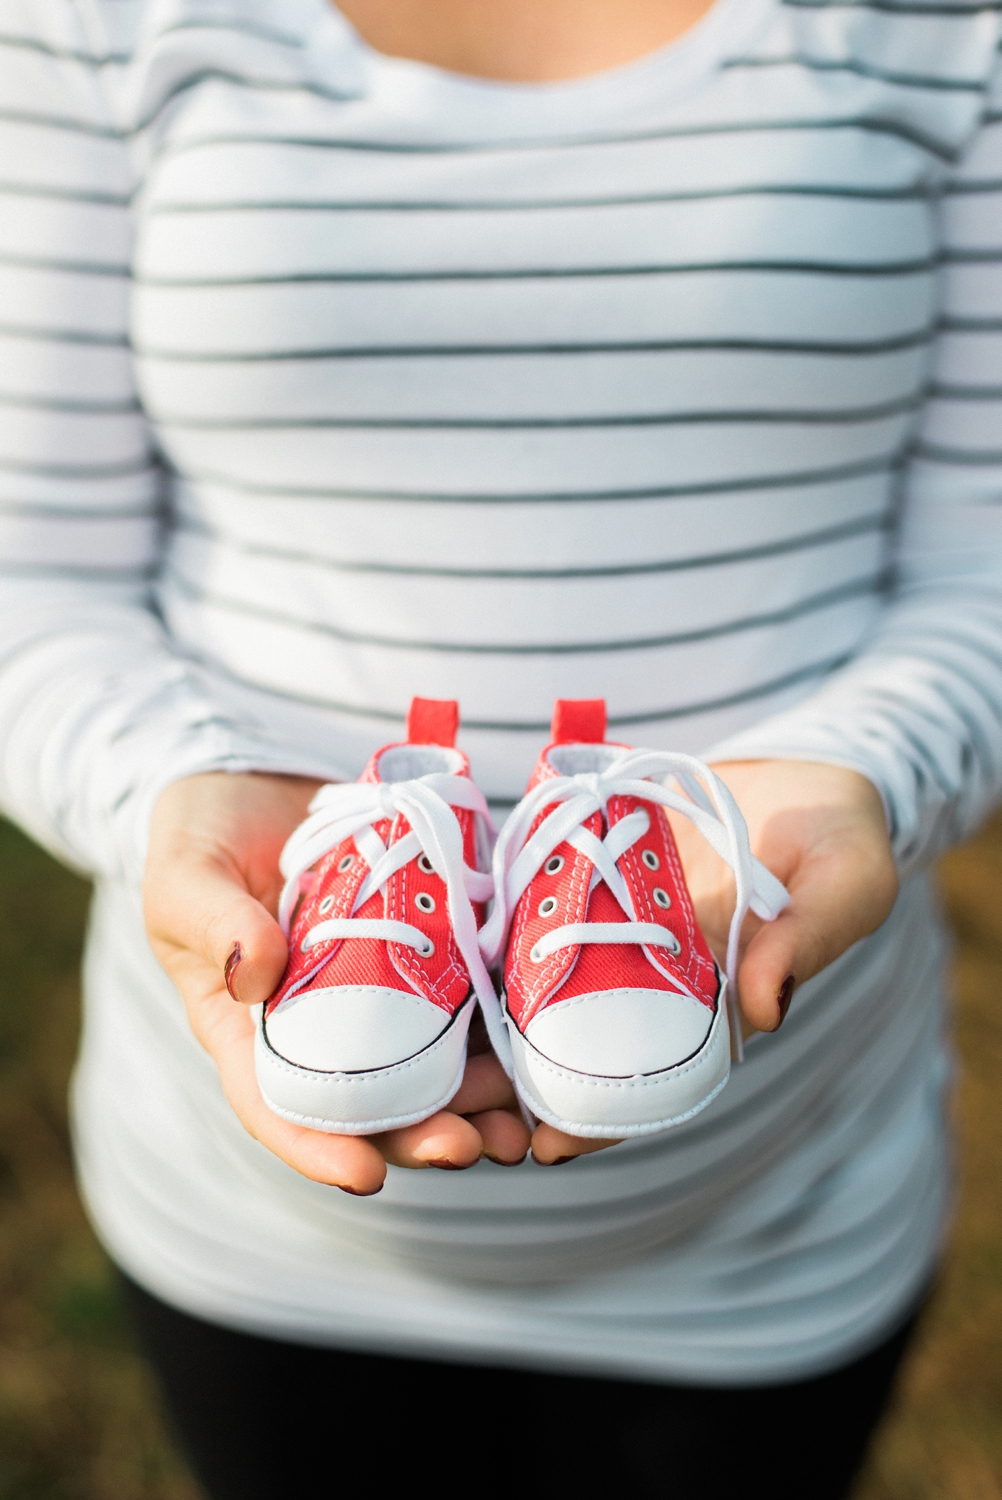 hood-river-maternity-baby-shoes-columbia-river-gorge-shelley-marie-photo-005_cr.jpg